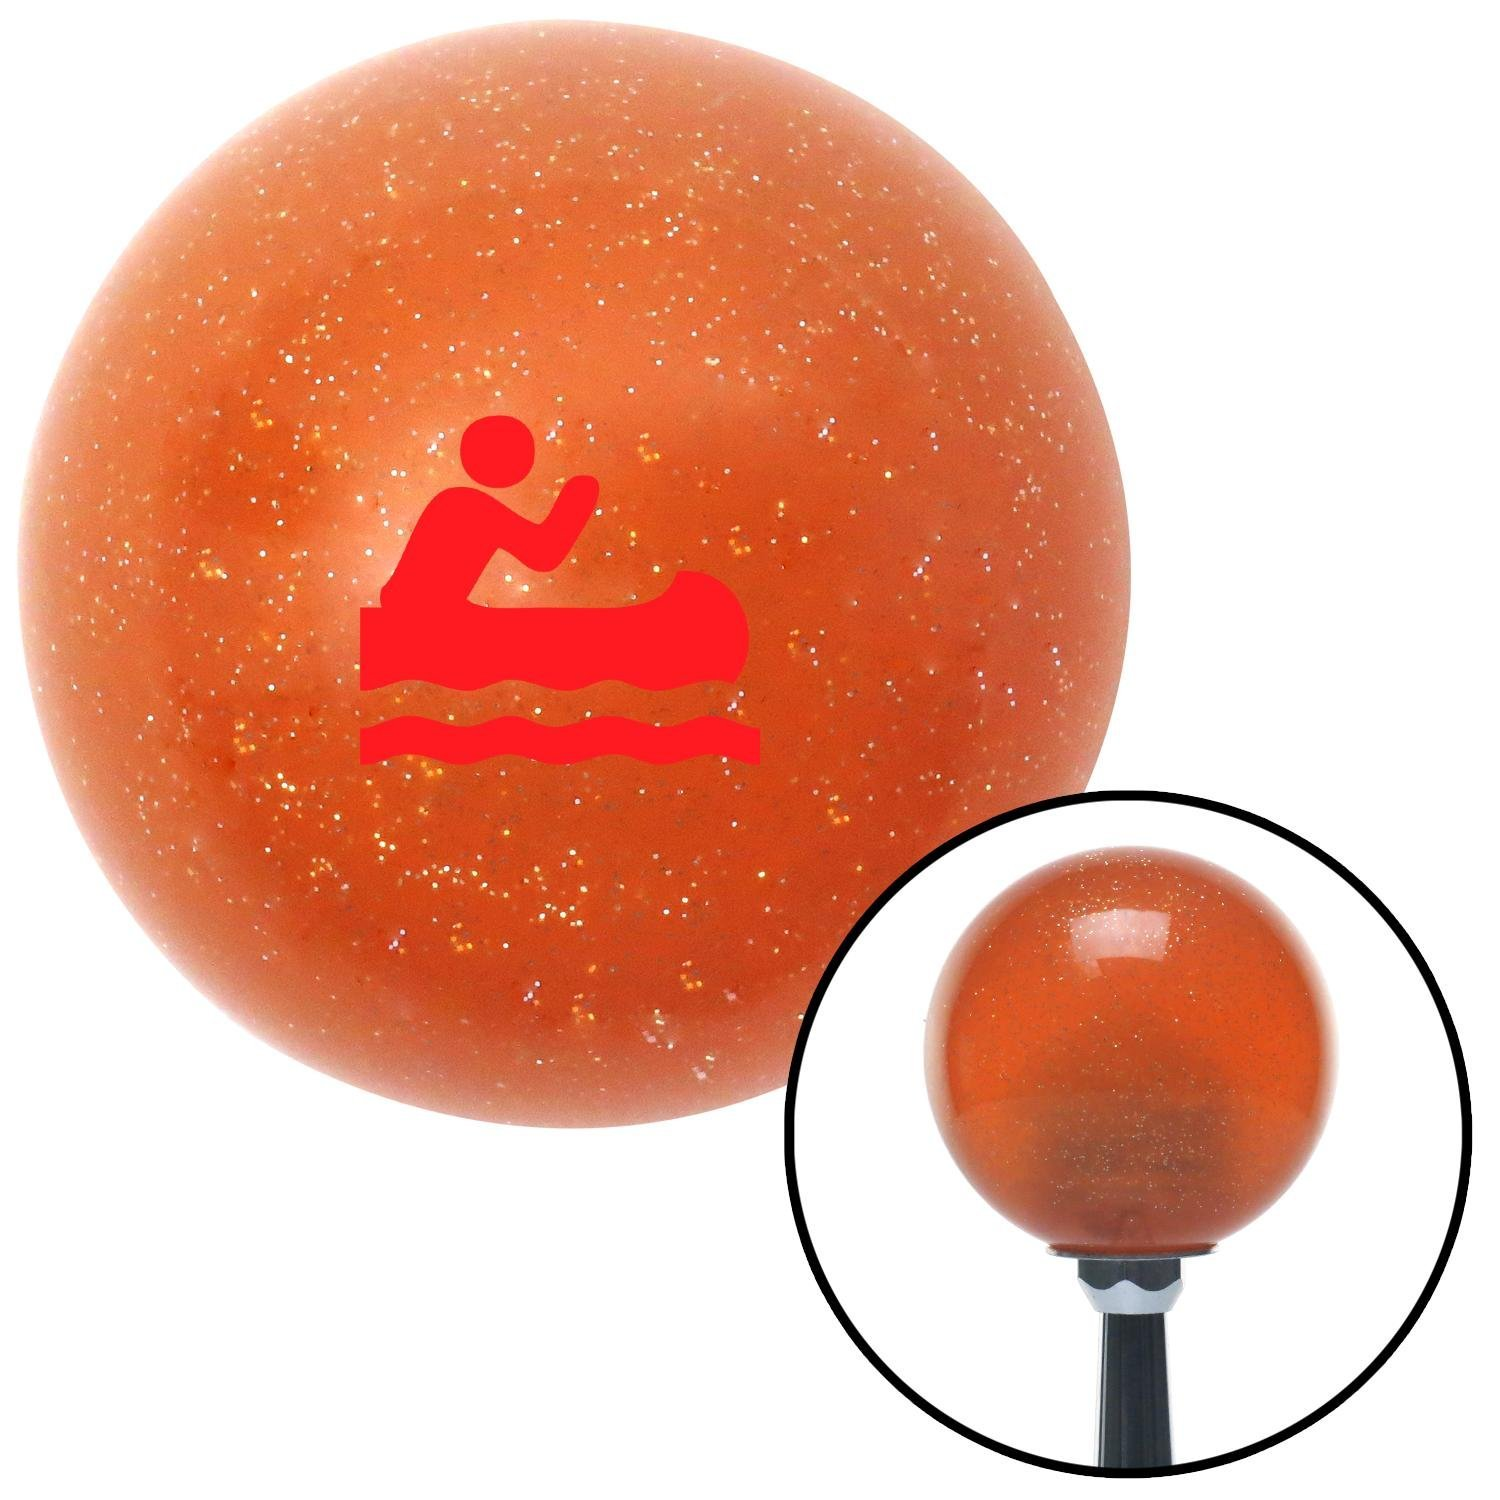 Red Marine in Canoe American Shifter 44012 Orange Metal Flake Shift Knob with 16mm x 1.5 Insert